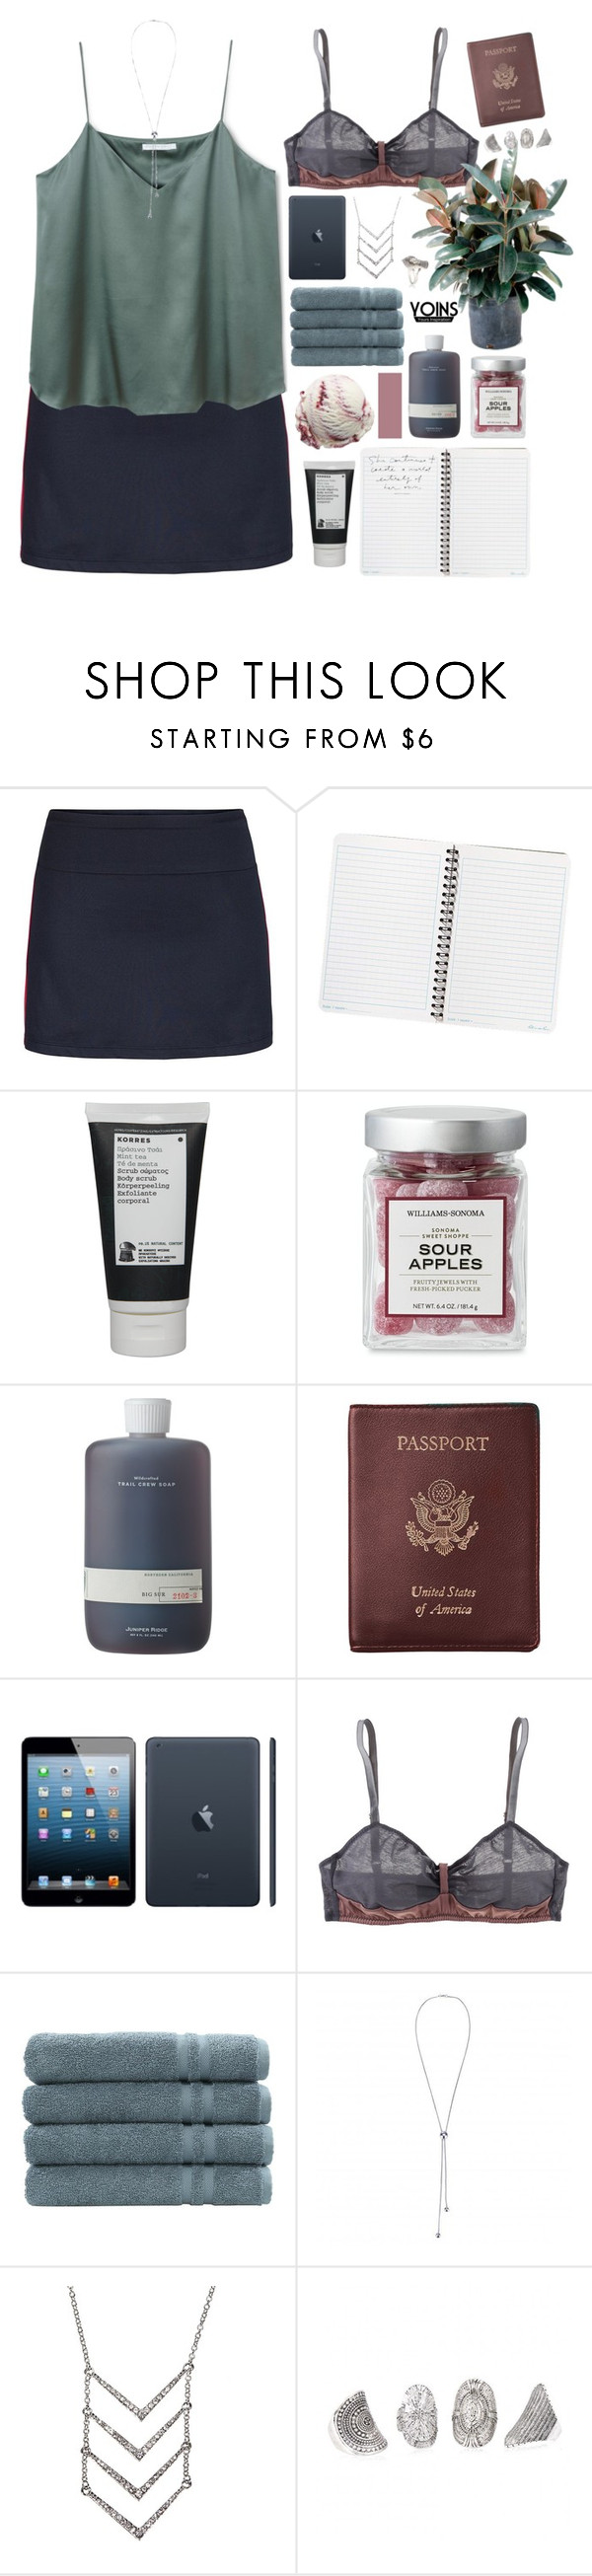 """""""Yoins // Plant Girl"""" by ritaflagy ❤ liked on Polyvore featuring Tail, Korres, Royce Leather, Apple, Araks, Linum Home Textiles and yoins"""